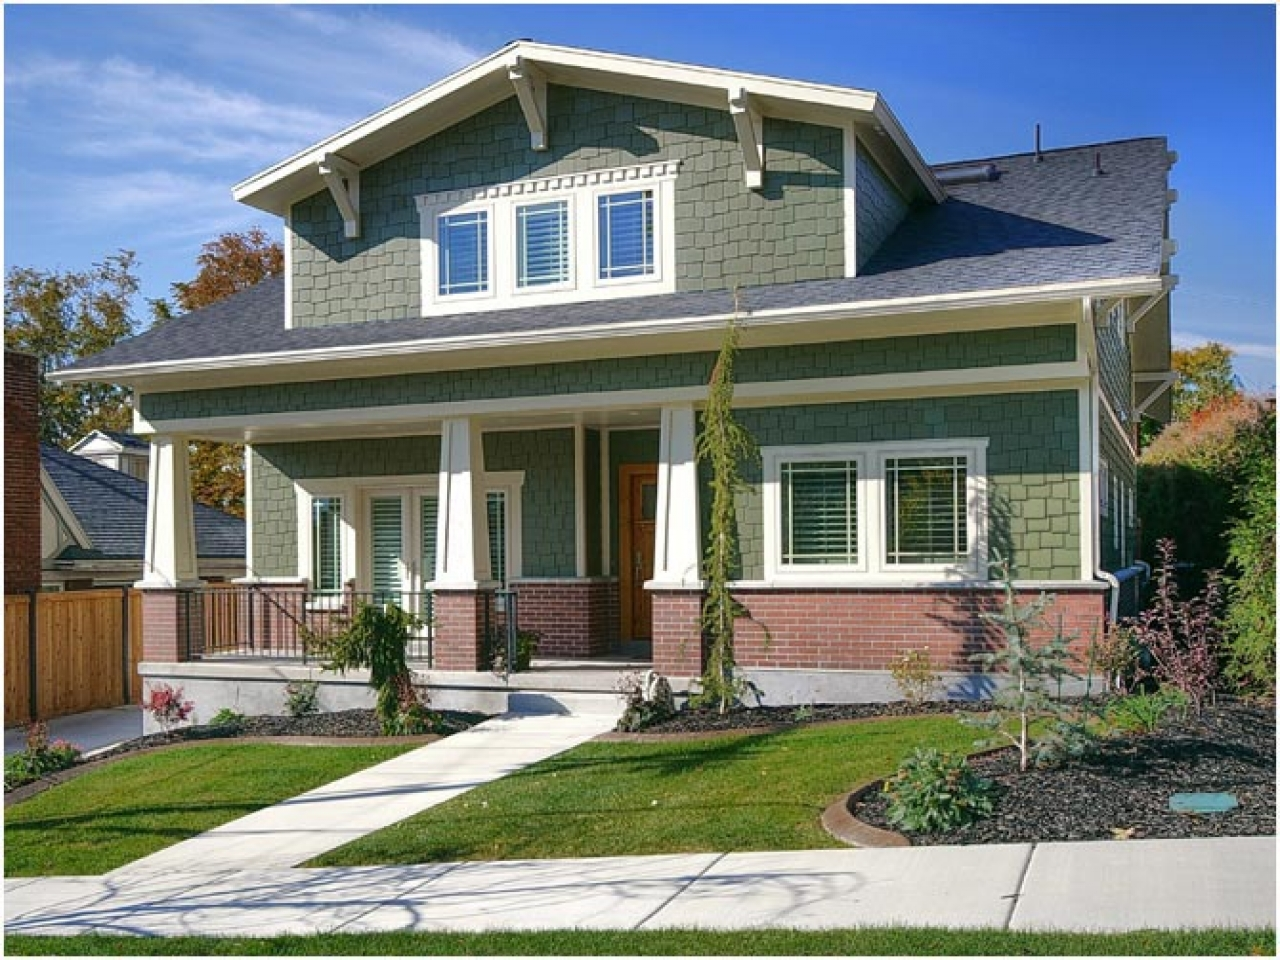 Bungalow Home Exterior Designs French Country Exterior Design Simple Bungalow Design